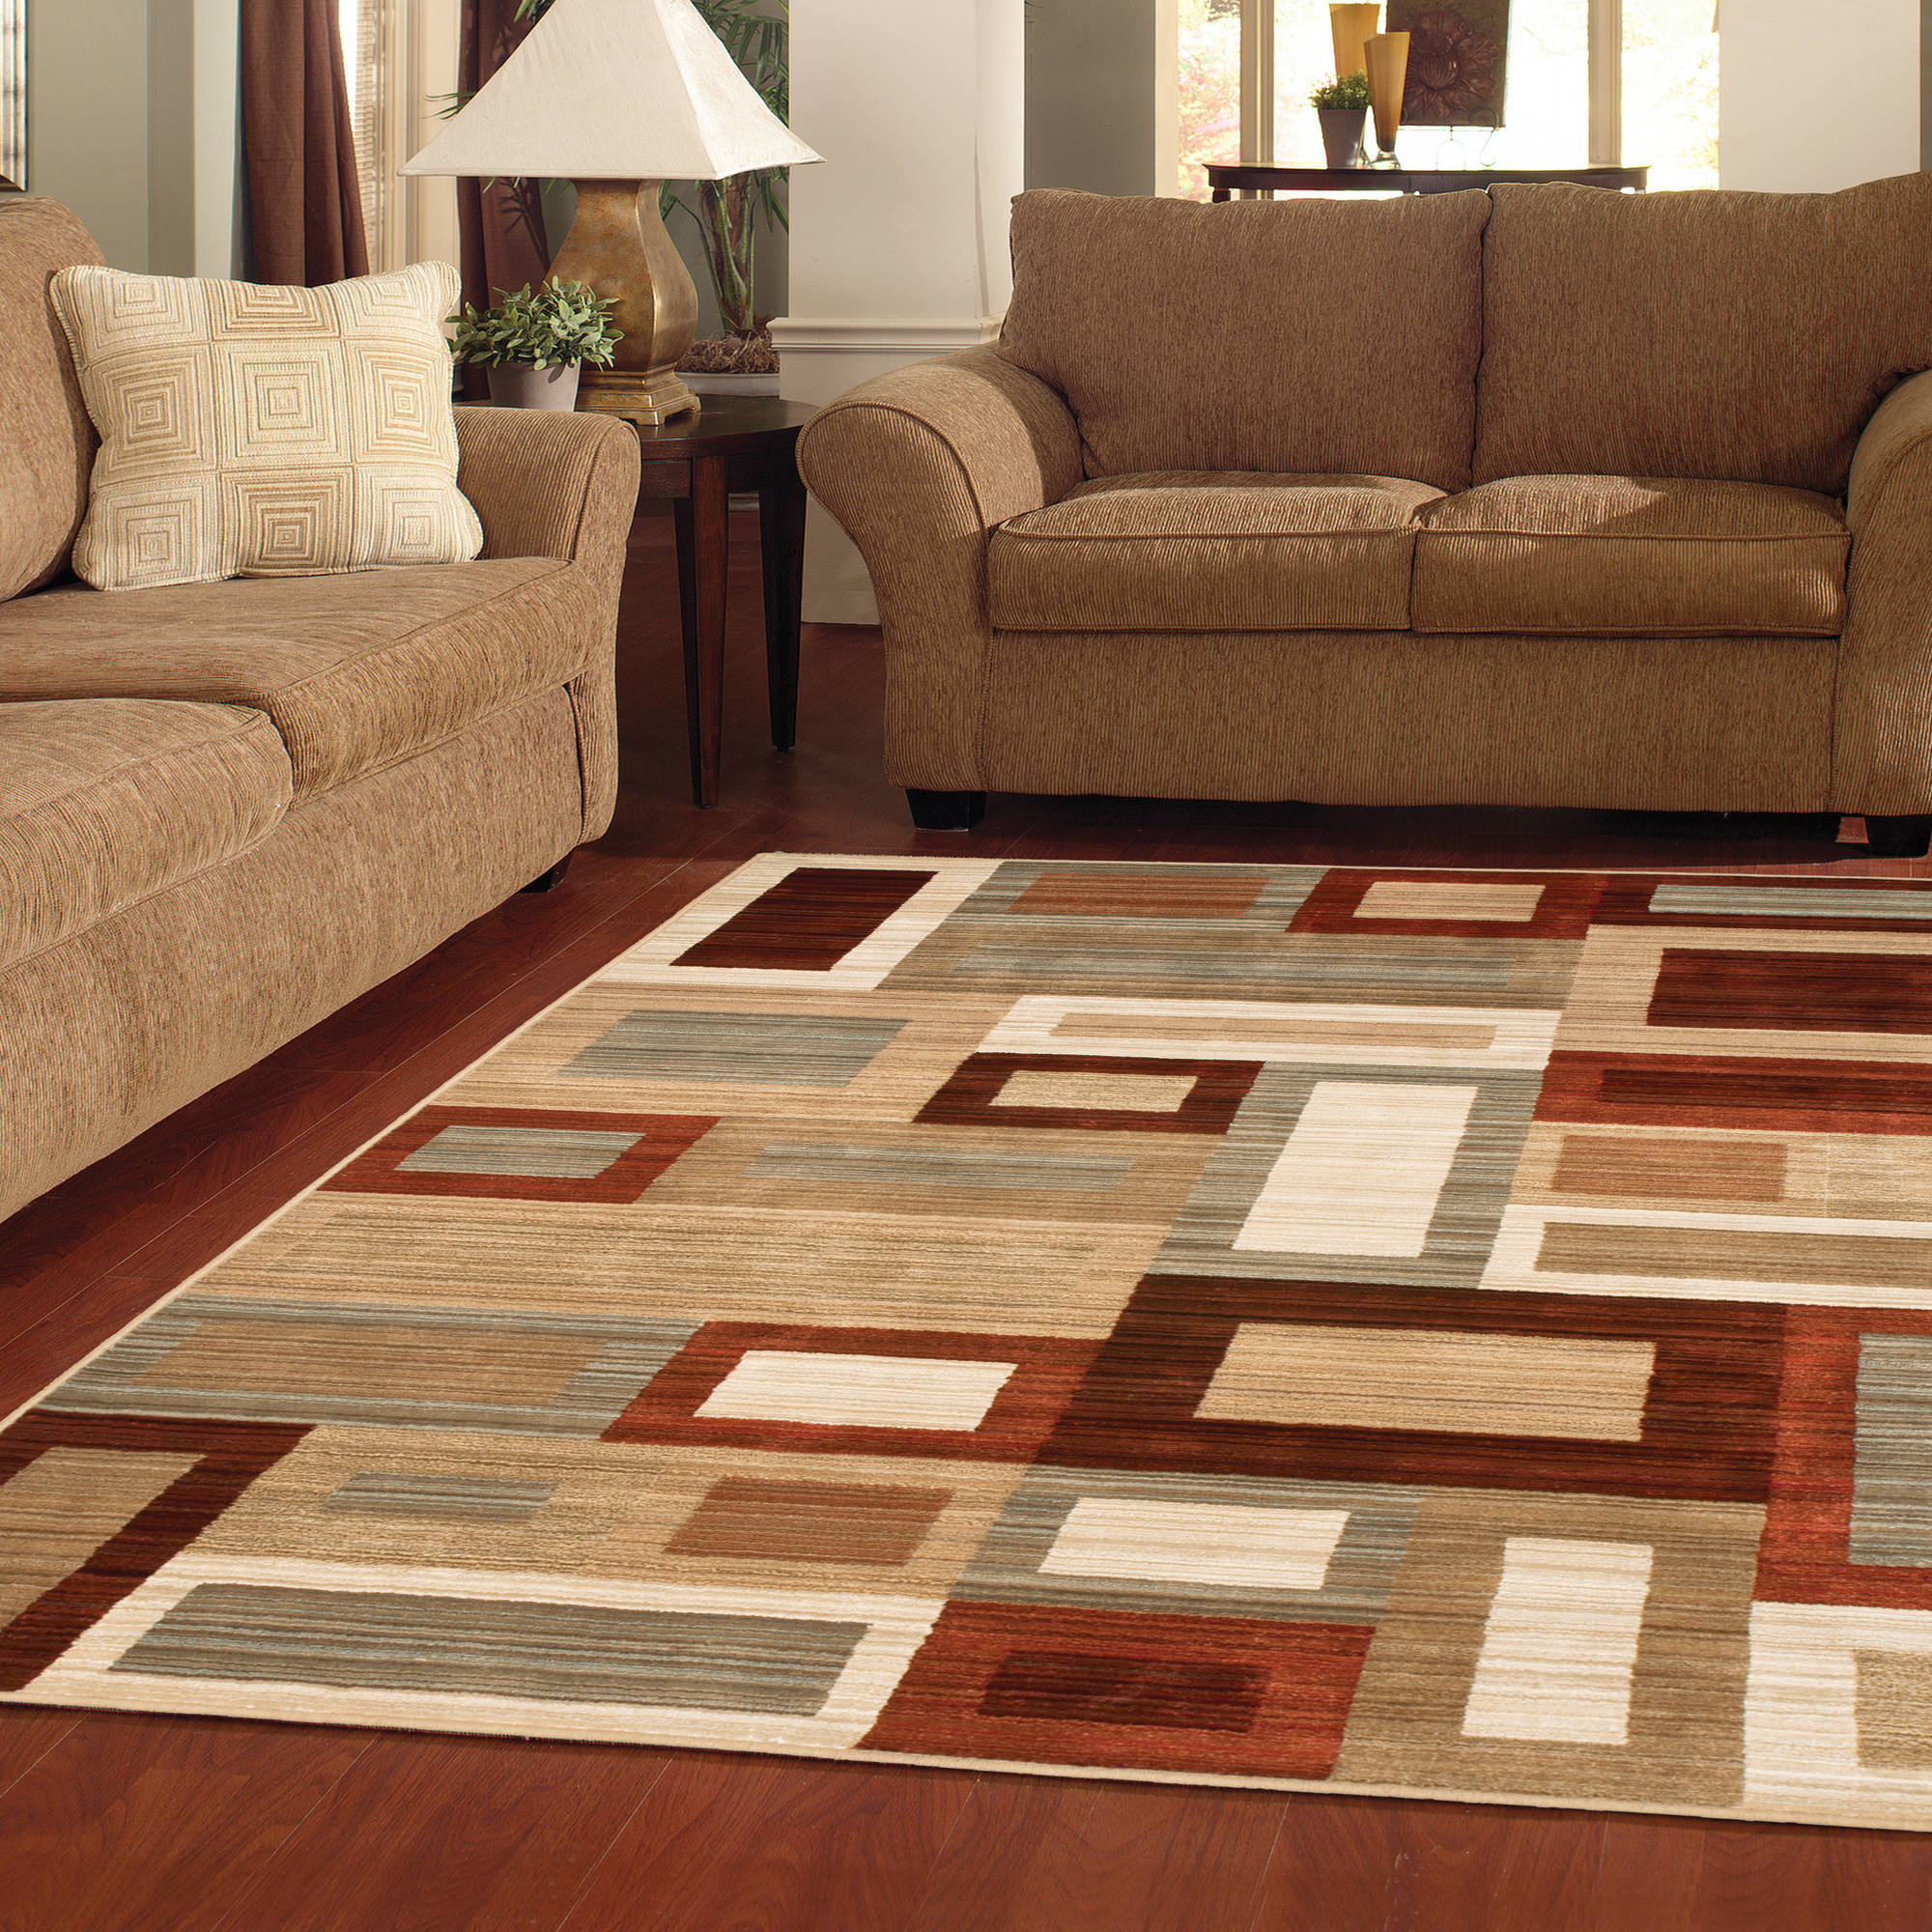 Groovy Better Homes Gardens 60 X 90 Franklin Squares Area Rug Download Free Architecture Designs Embacsunscenecom